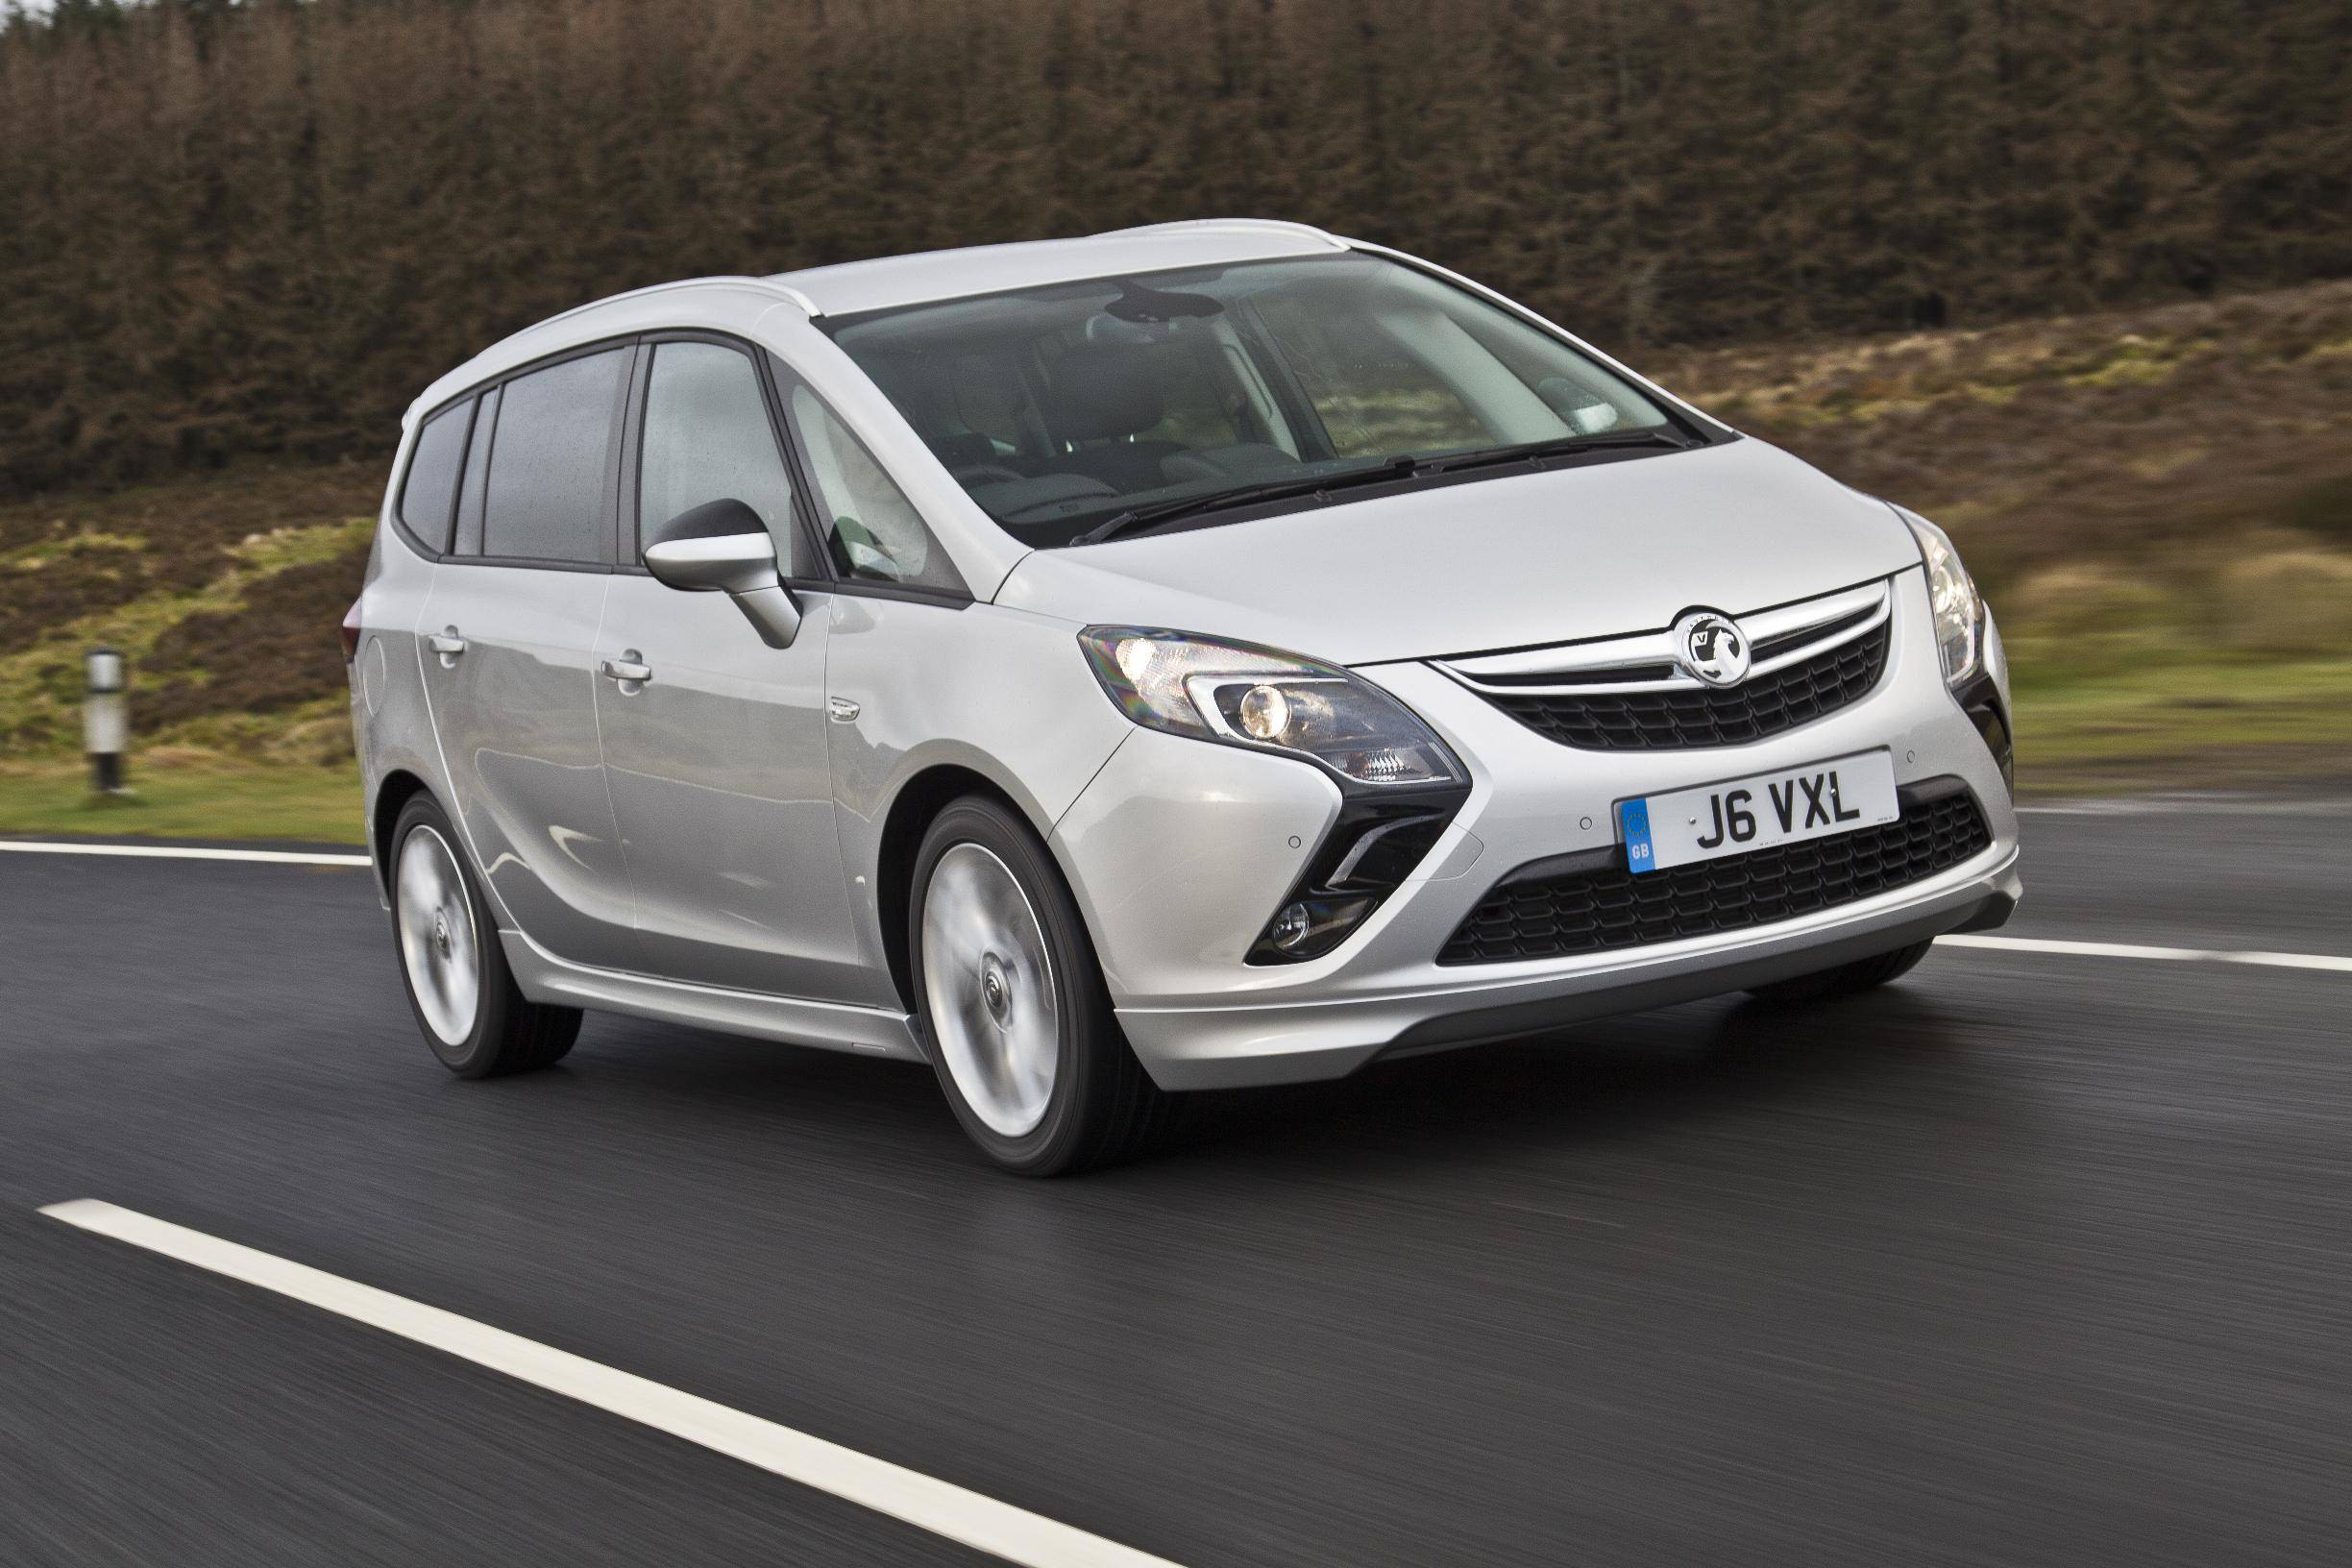 Vauxhall Zafira Best Family Car